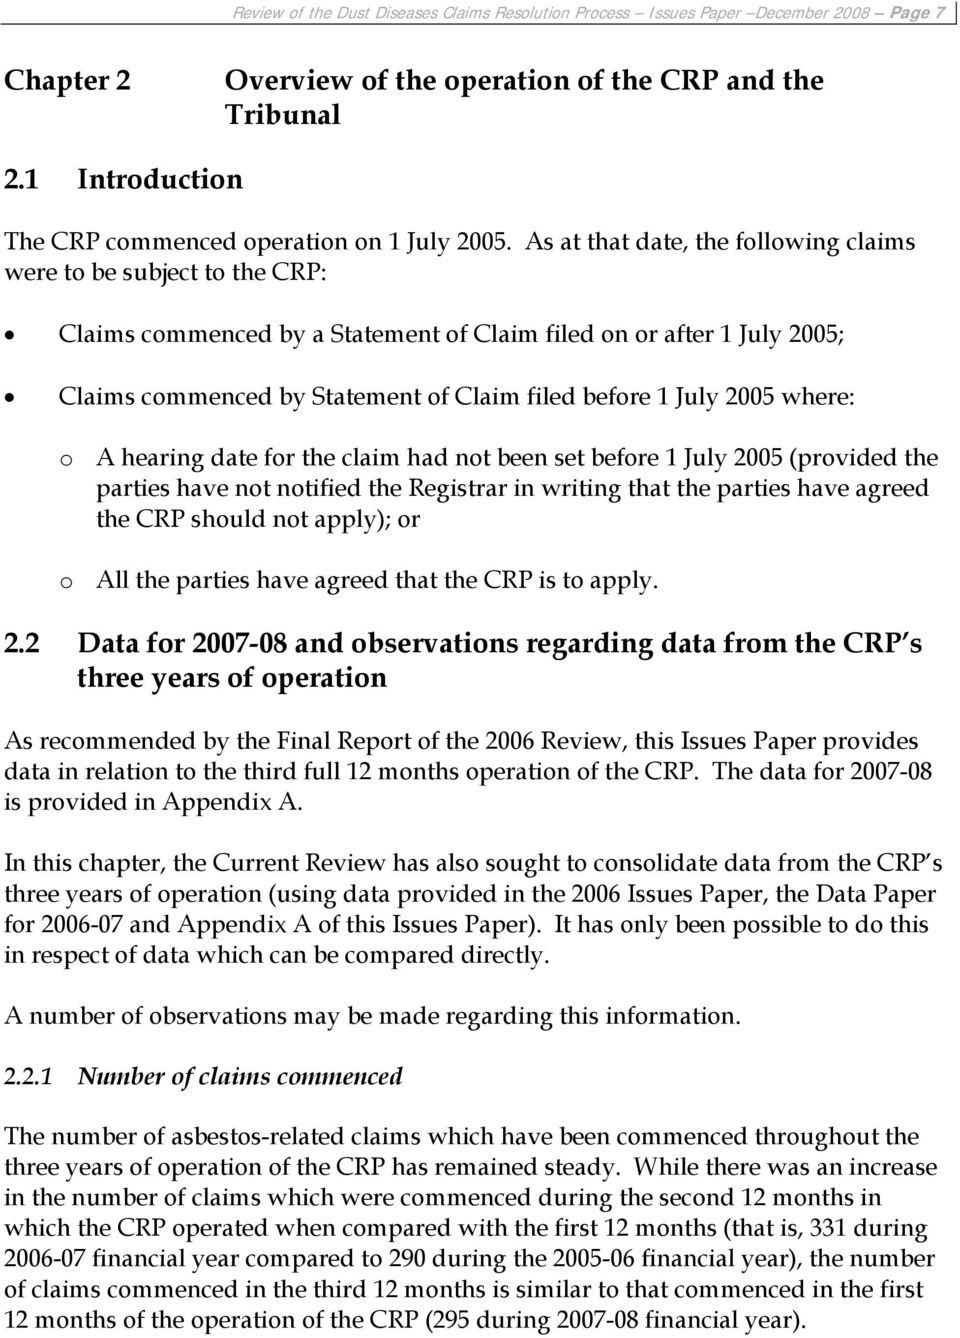 As at that date, the following claims were to be subject to the CRP: Claims commenced by a Statement of Claim filed on or after 1 July 2005; Claims commenced by Statement of Claim filed before 1 July